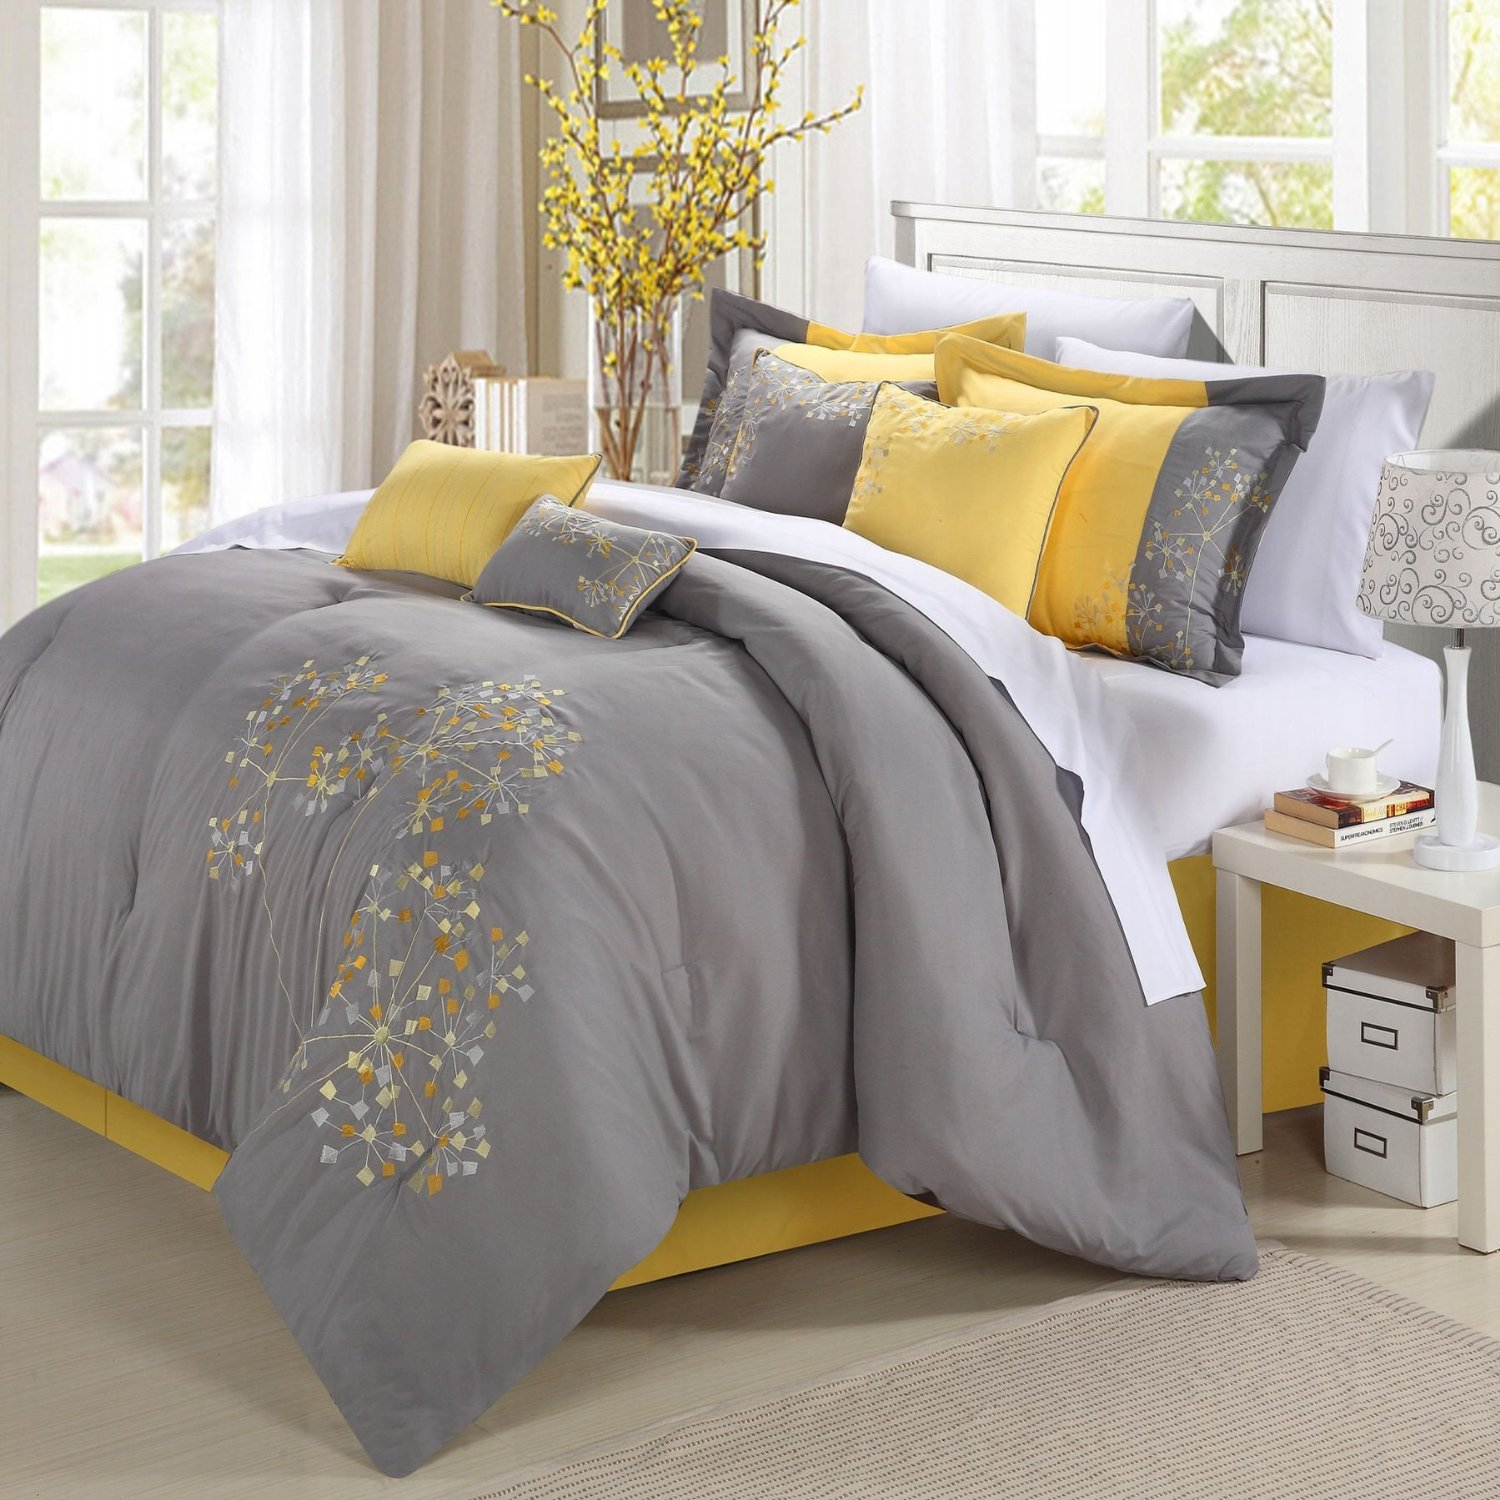 Bon Queen Size Bed Sets Cheap | Queen Size Bedding Sets | Kids Comforter Sets